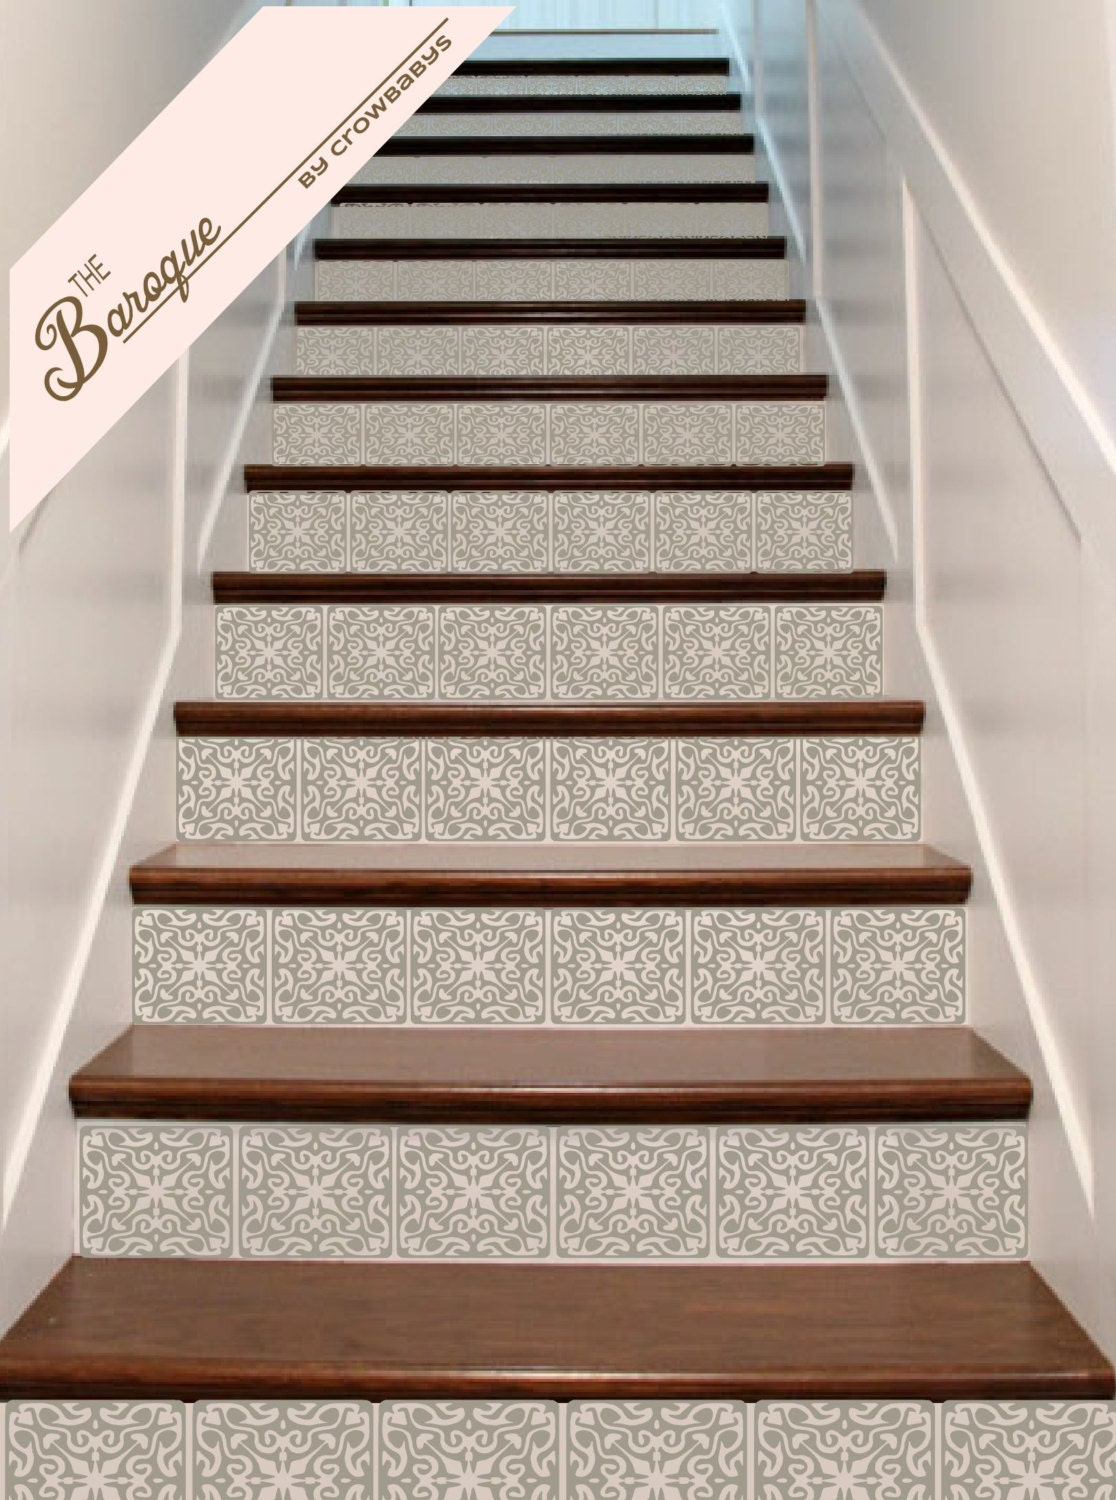 Stair stickers ornate vinyl tile decals for stair risers for Escalier decor